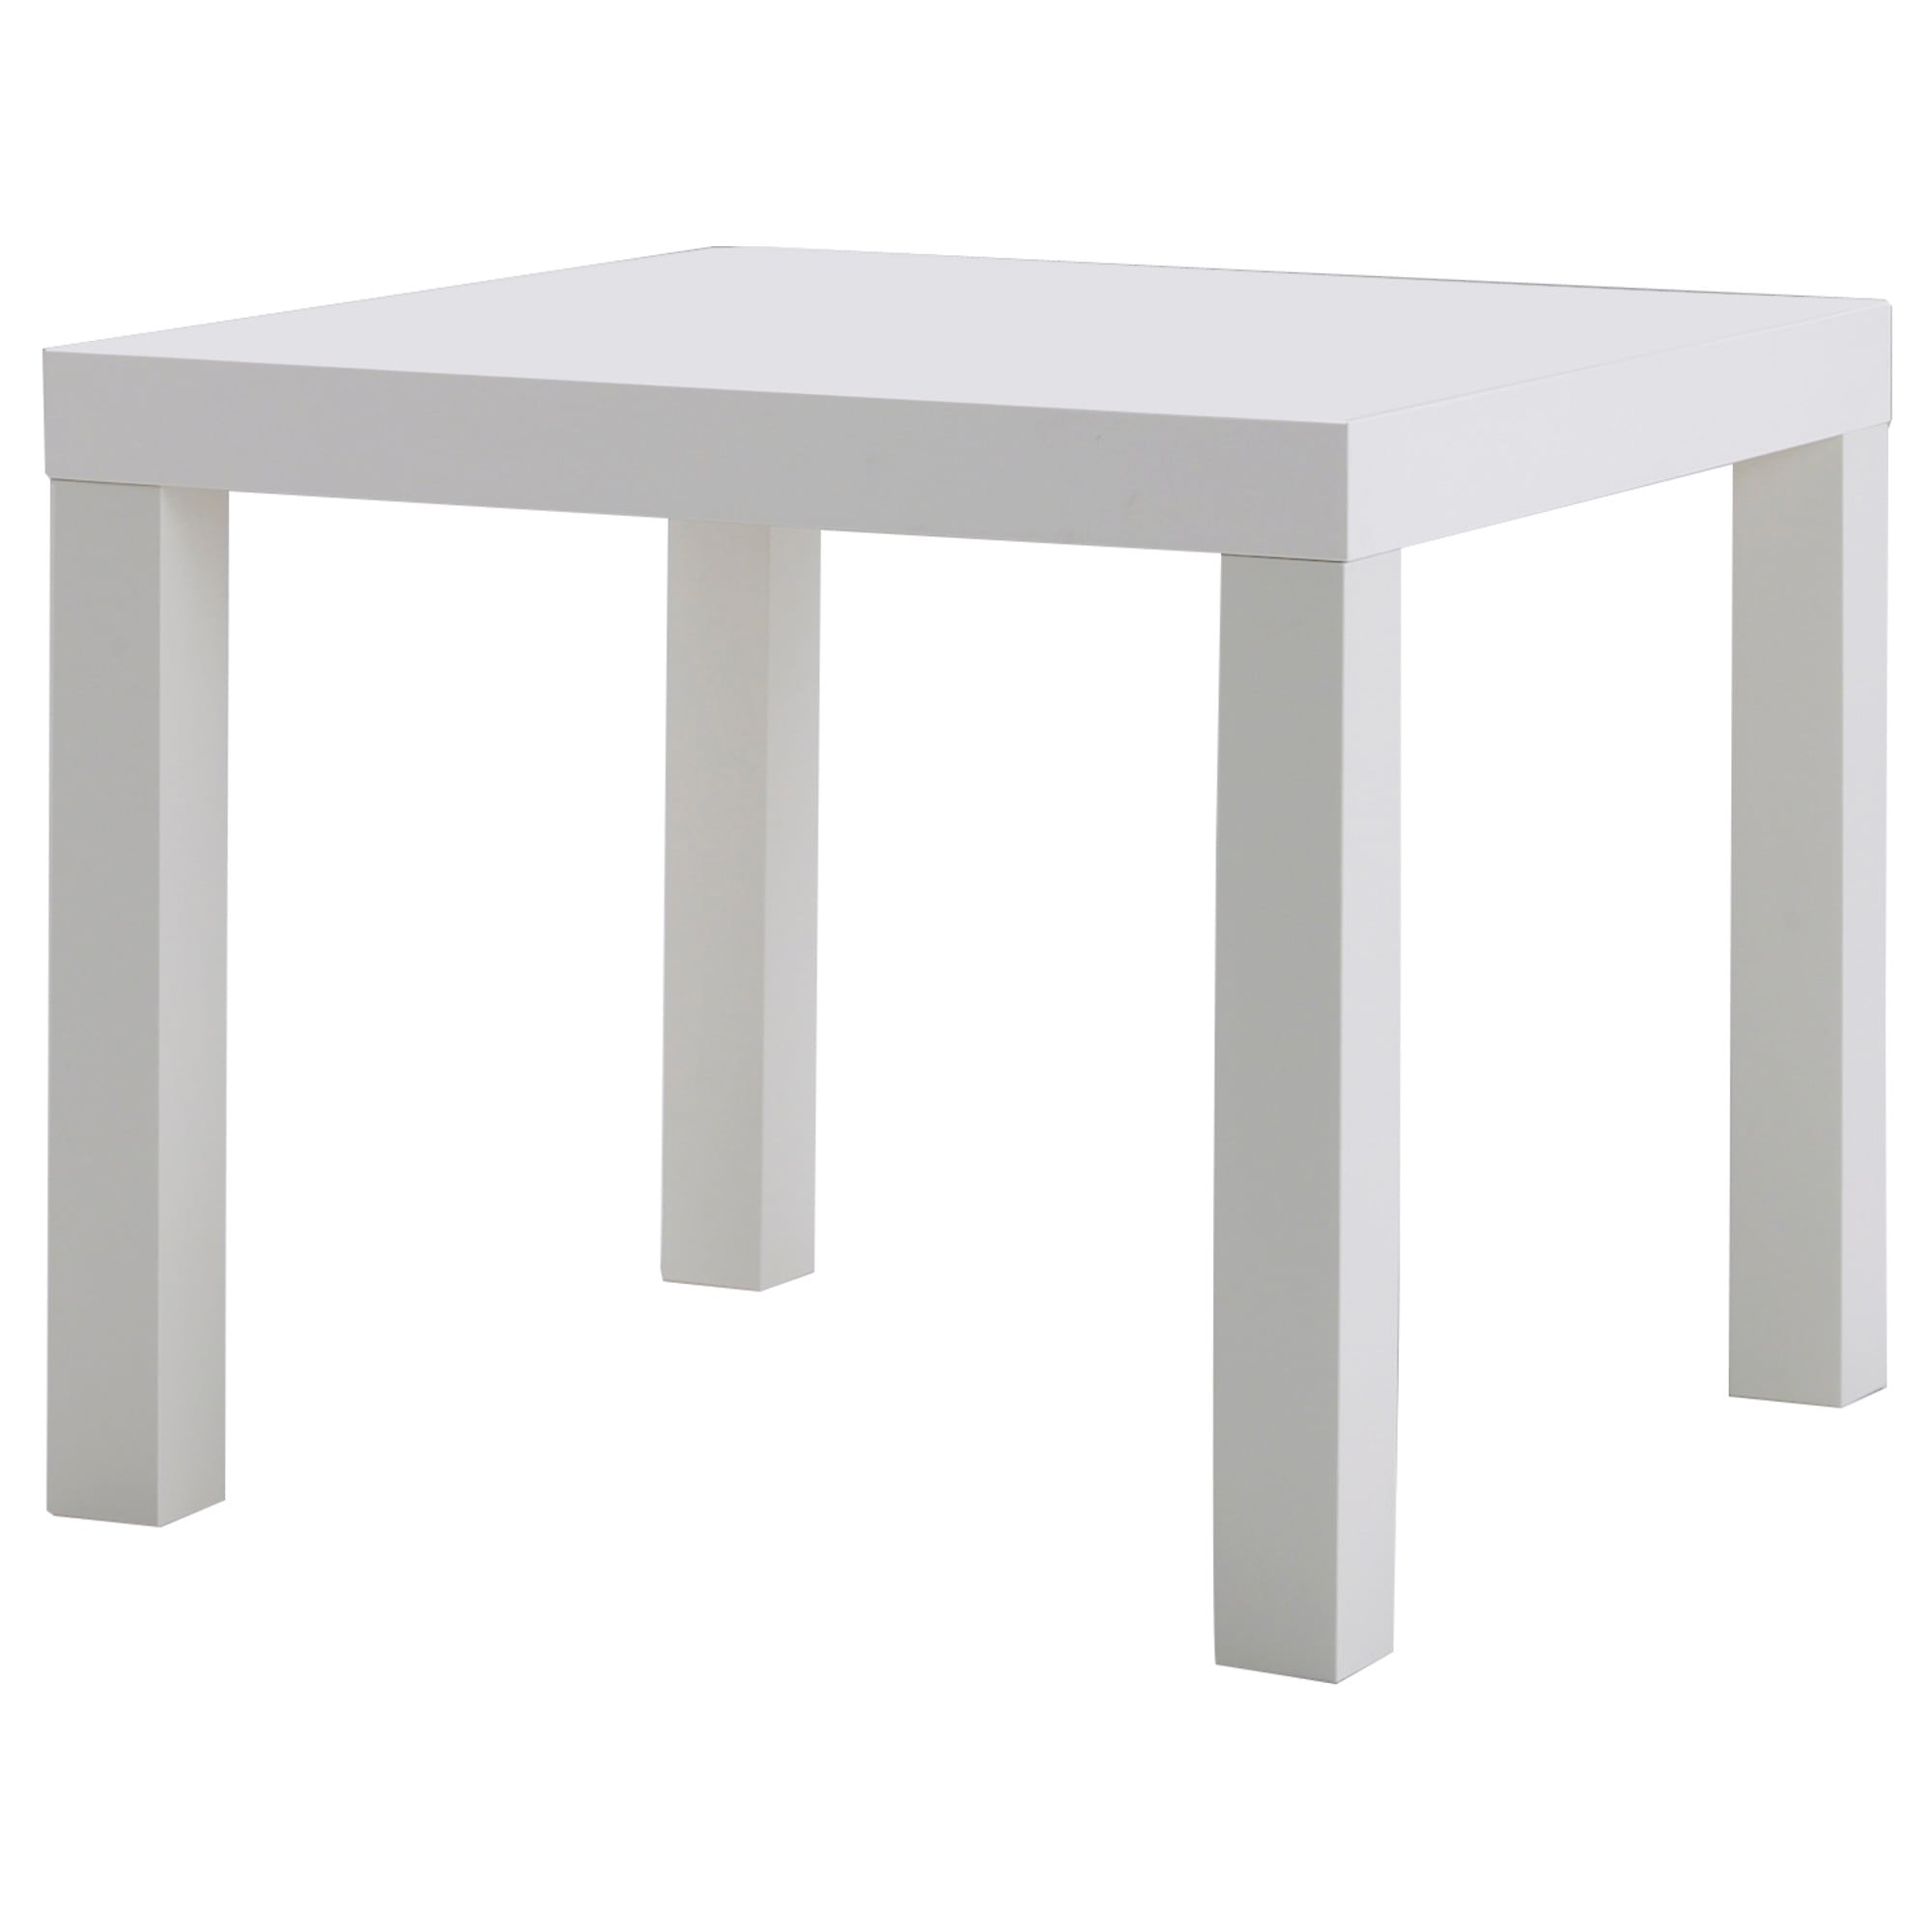 Lack Side Table White Ikea Family Member Price